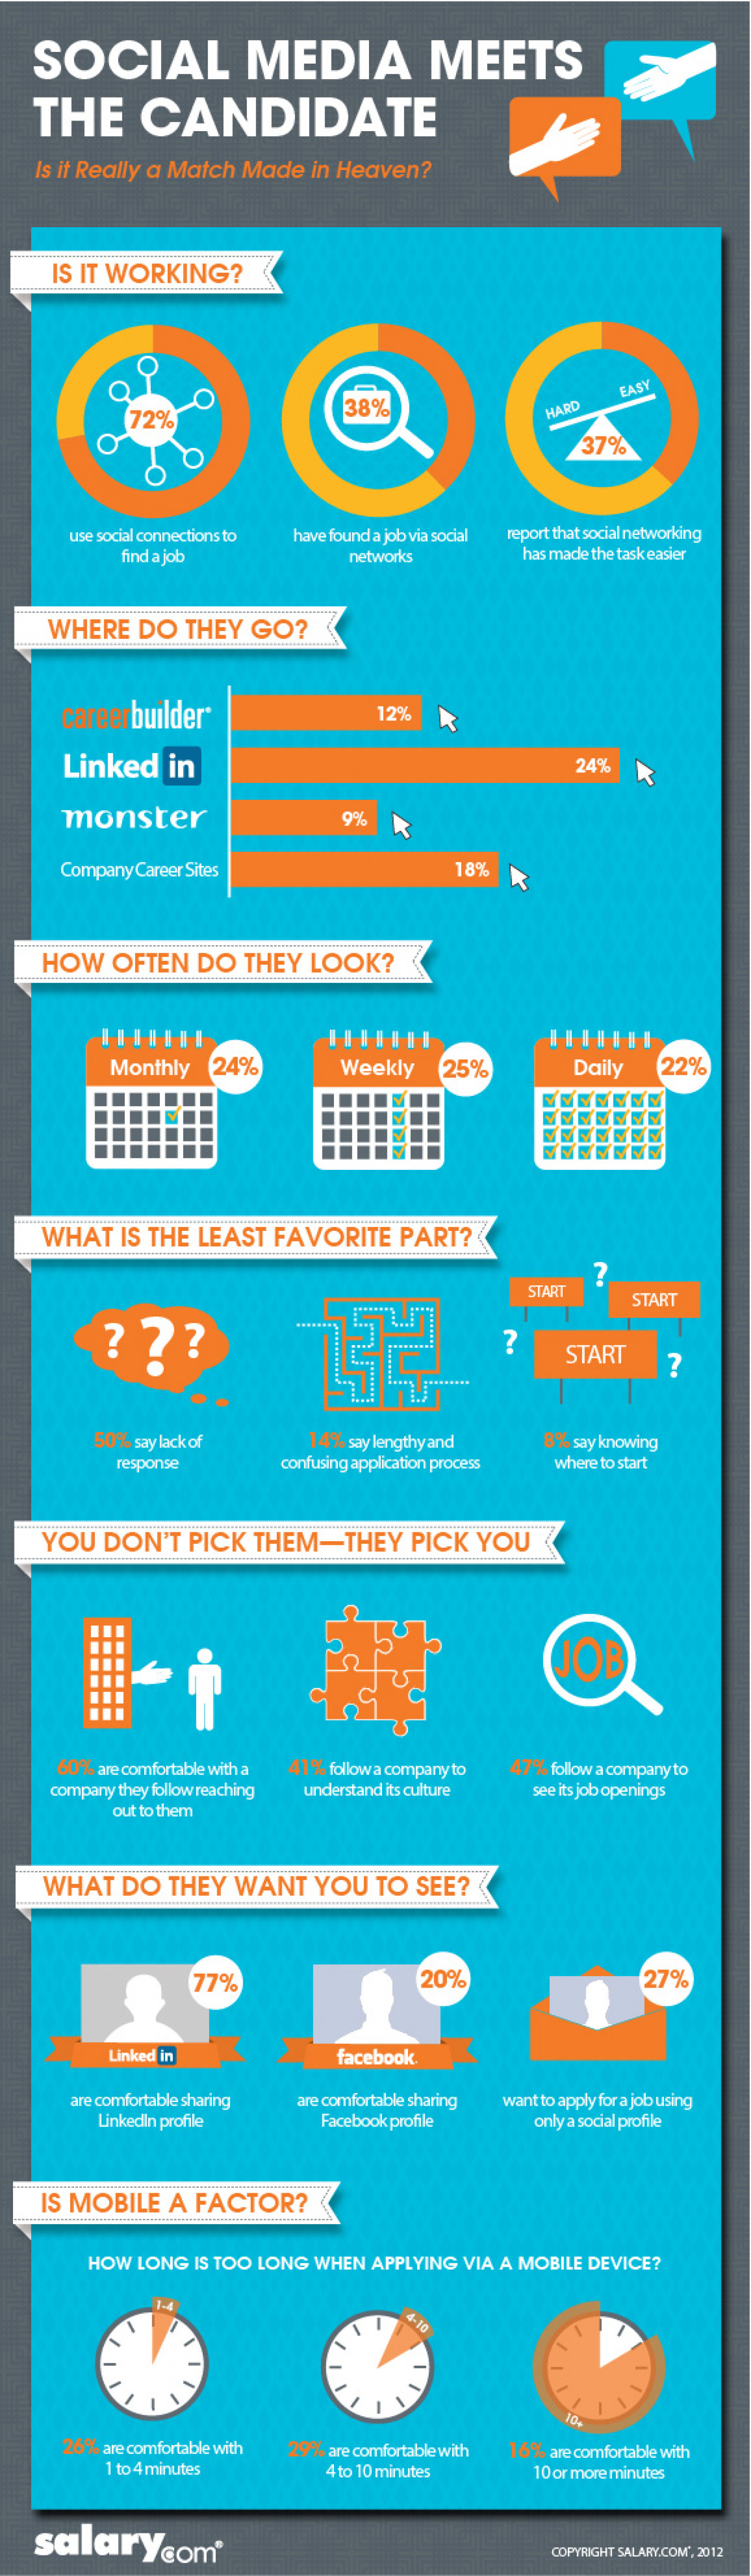 Social Media Meets the Candidate: Is it Really a Match Made in Heaven? Infographic